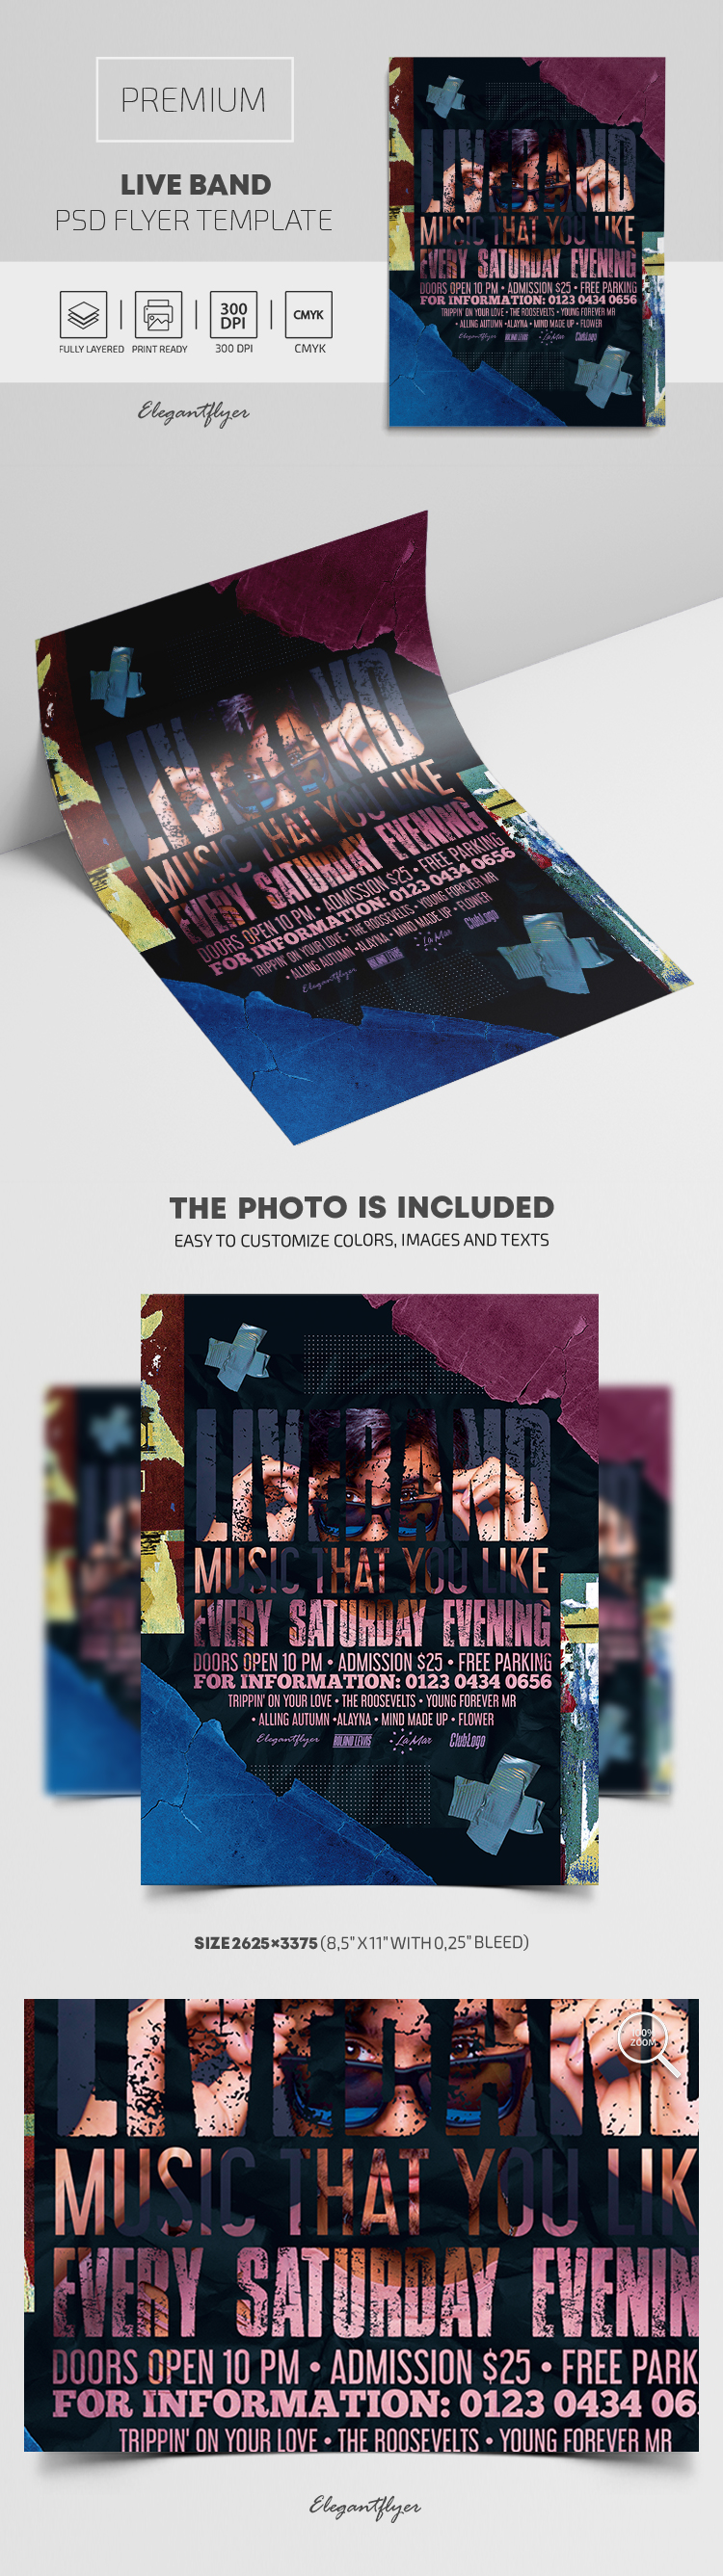 Live Band – Premium PSD Flyer Template